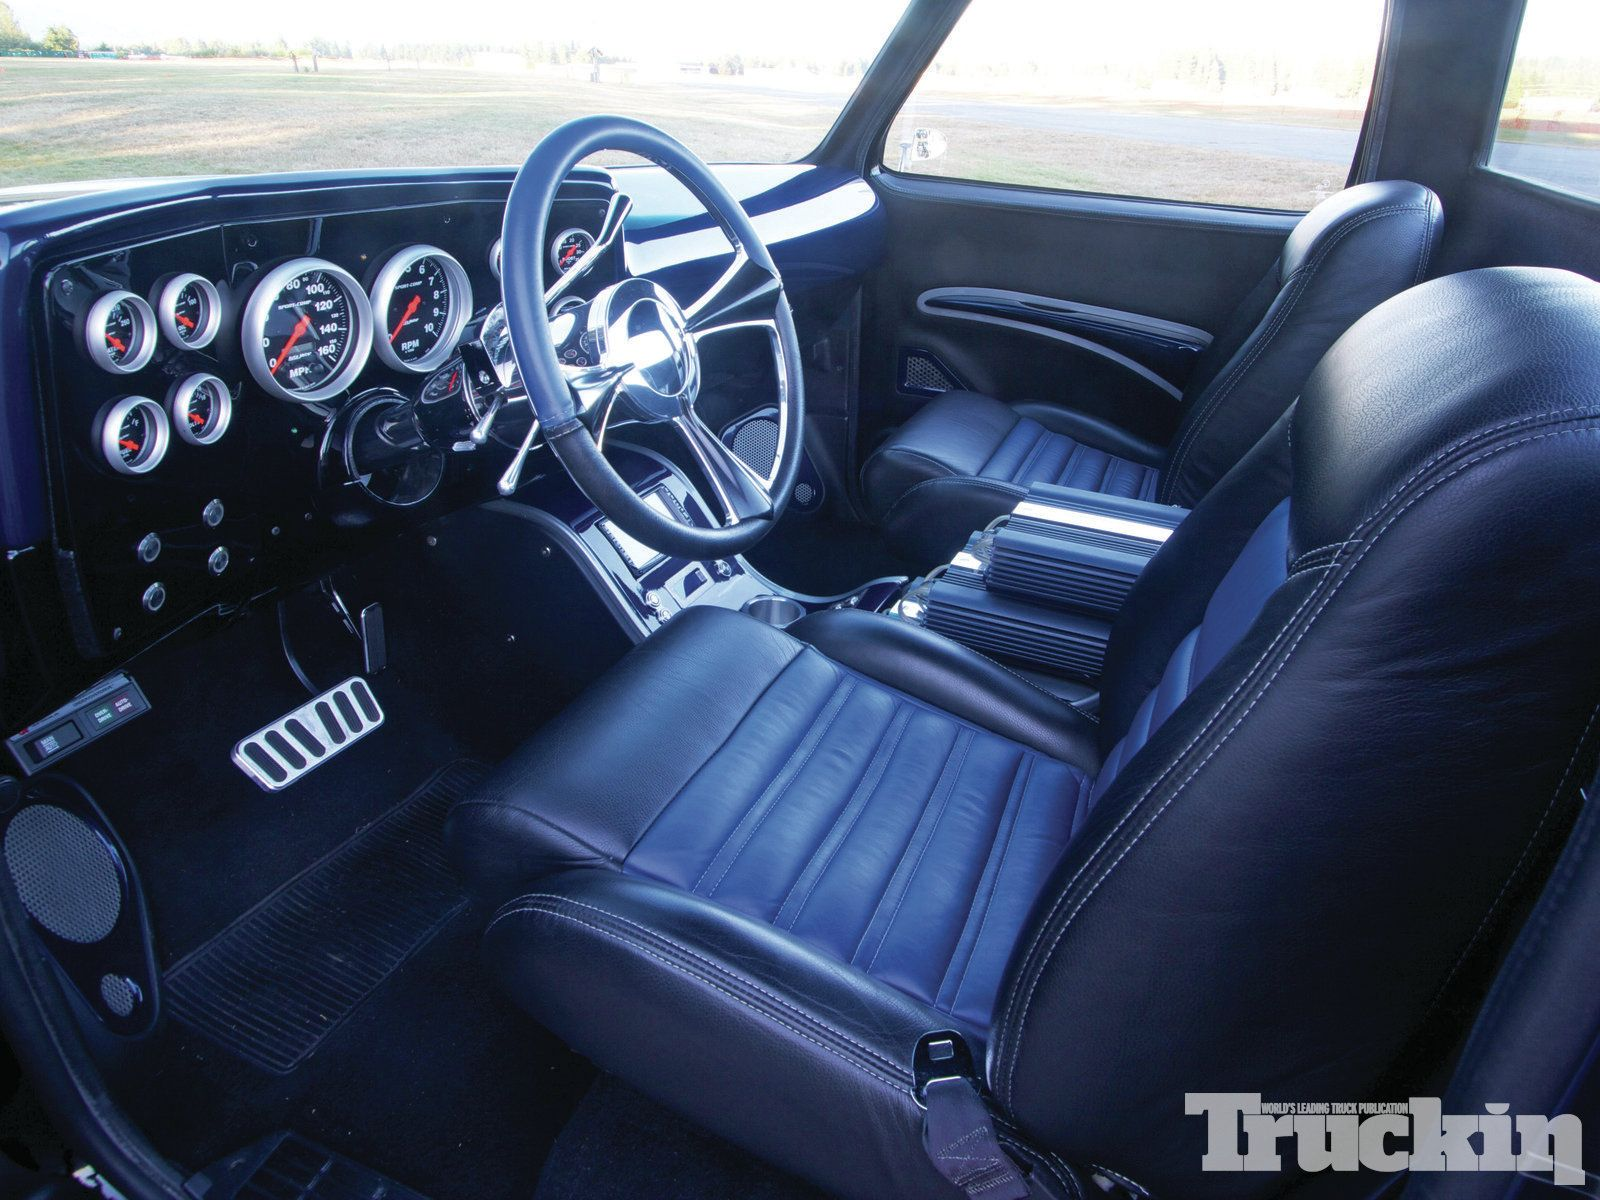 83 Chevy Truck Dash Pad - 1986 chevy truck interior google search